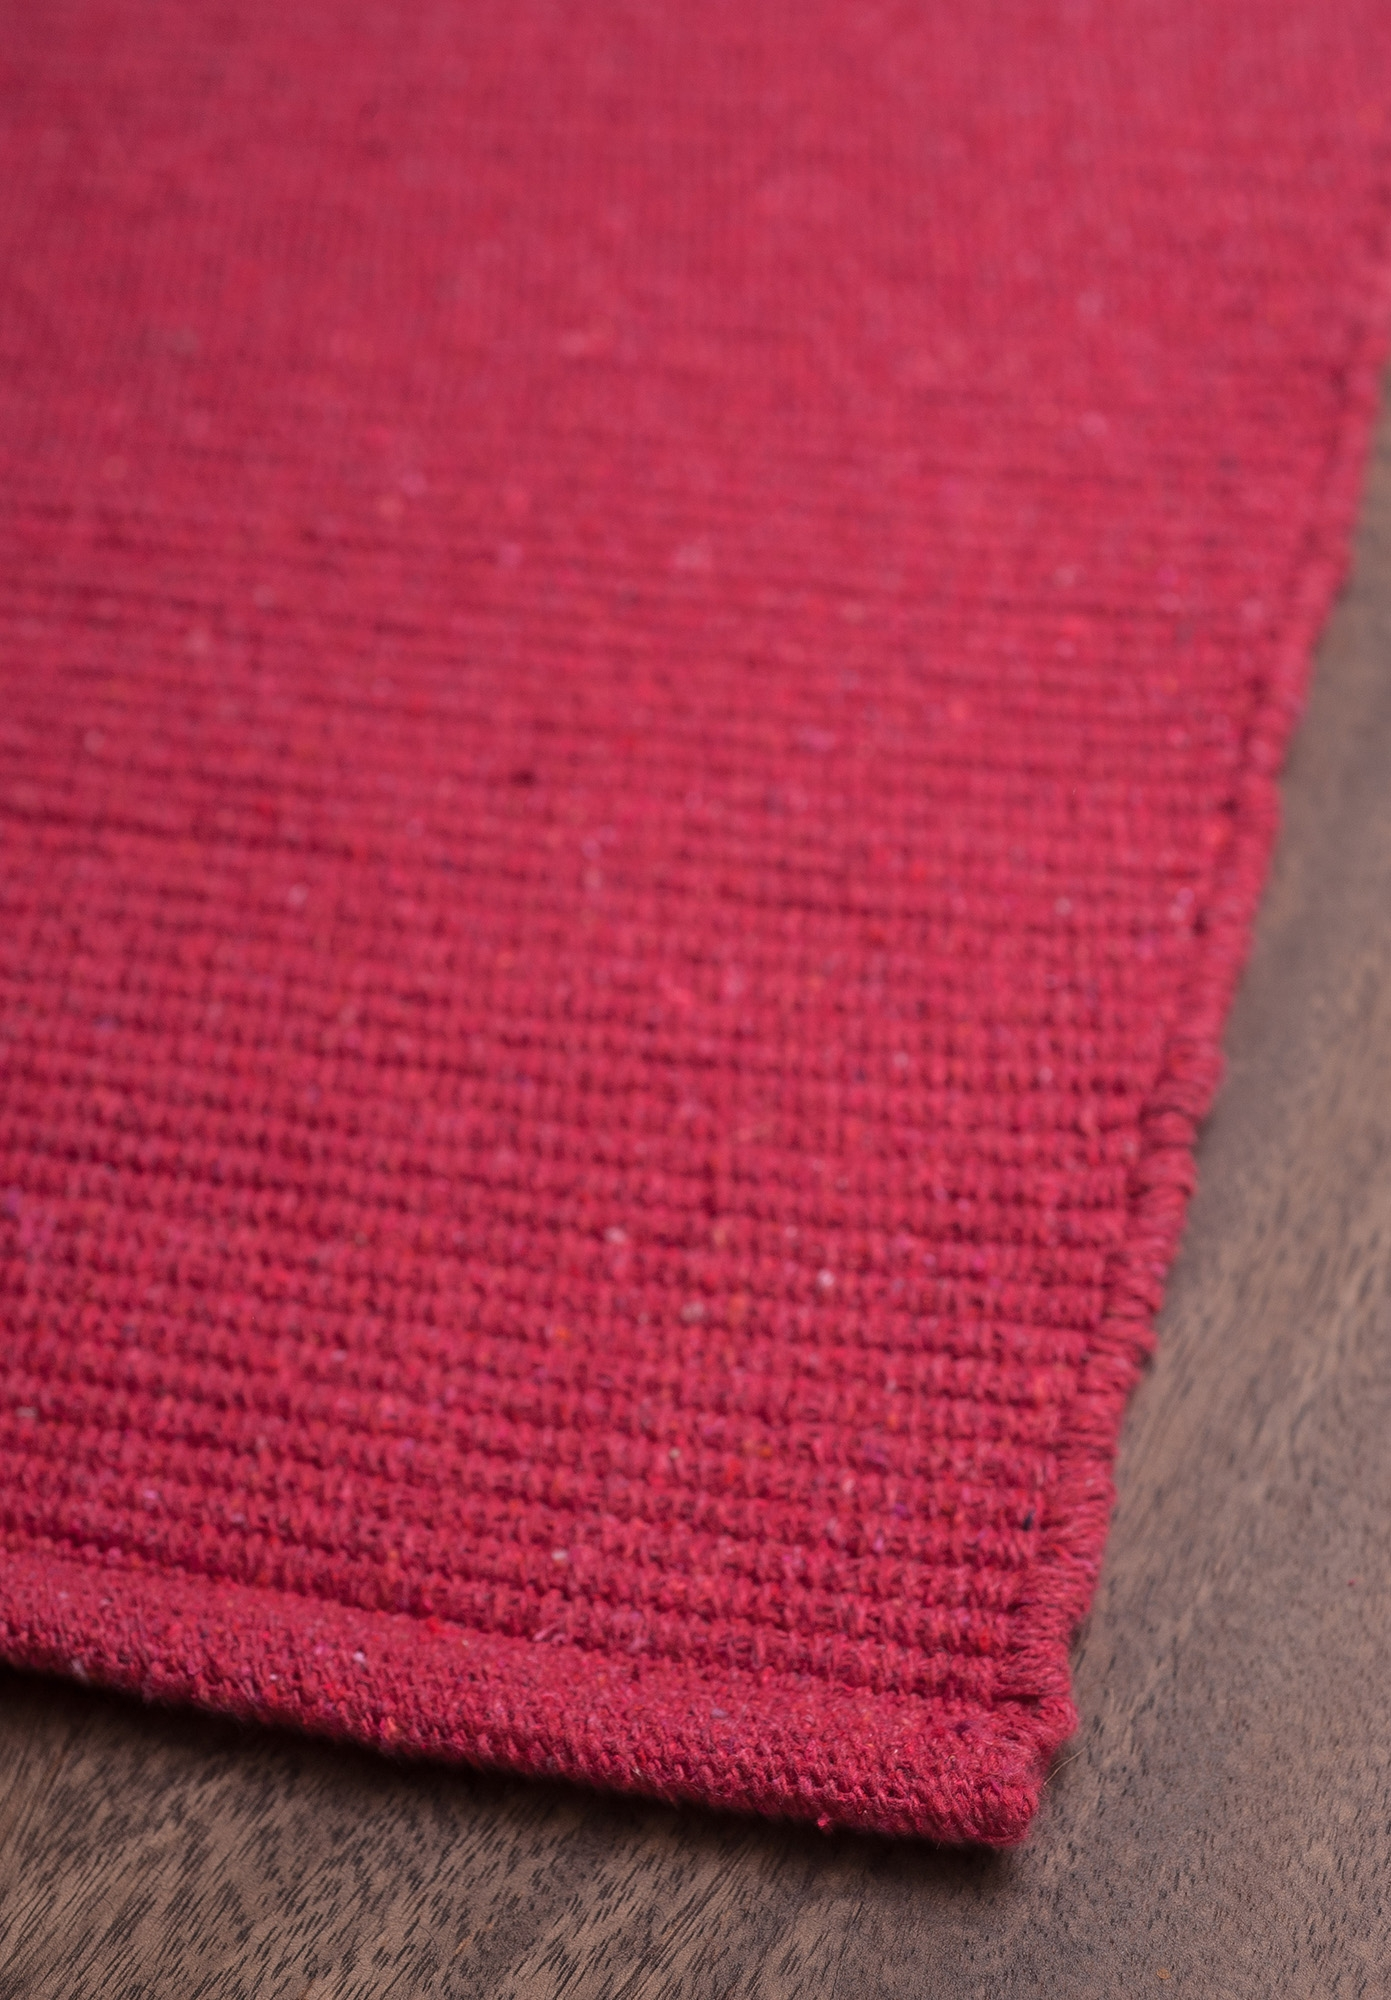 Solid Bright Red Flatweave Eco Cotton Rug Hook Loom With Regard To Red Wool Rugs (View 13 of 15)